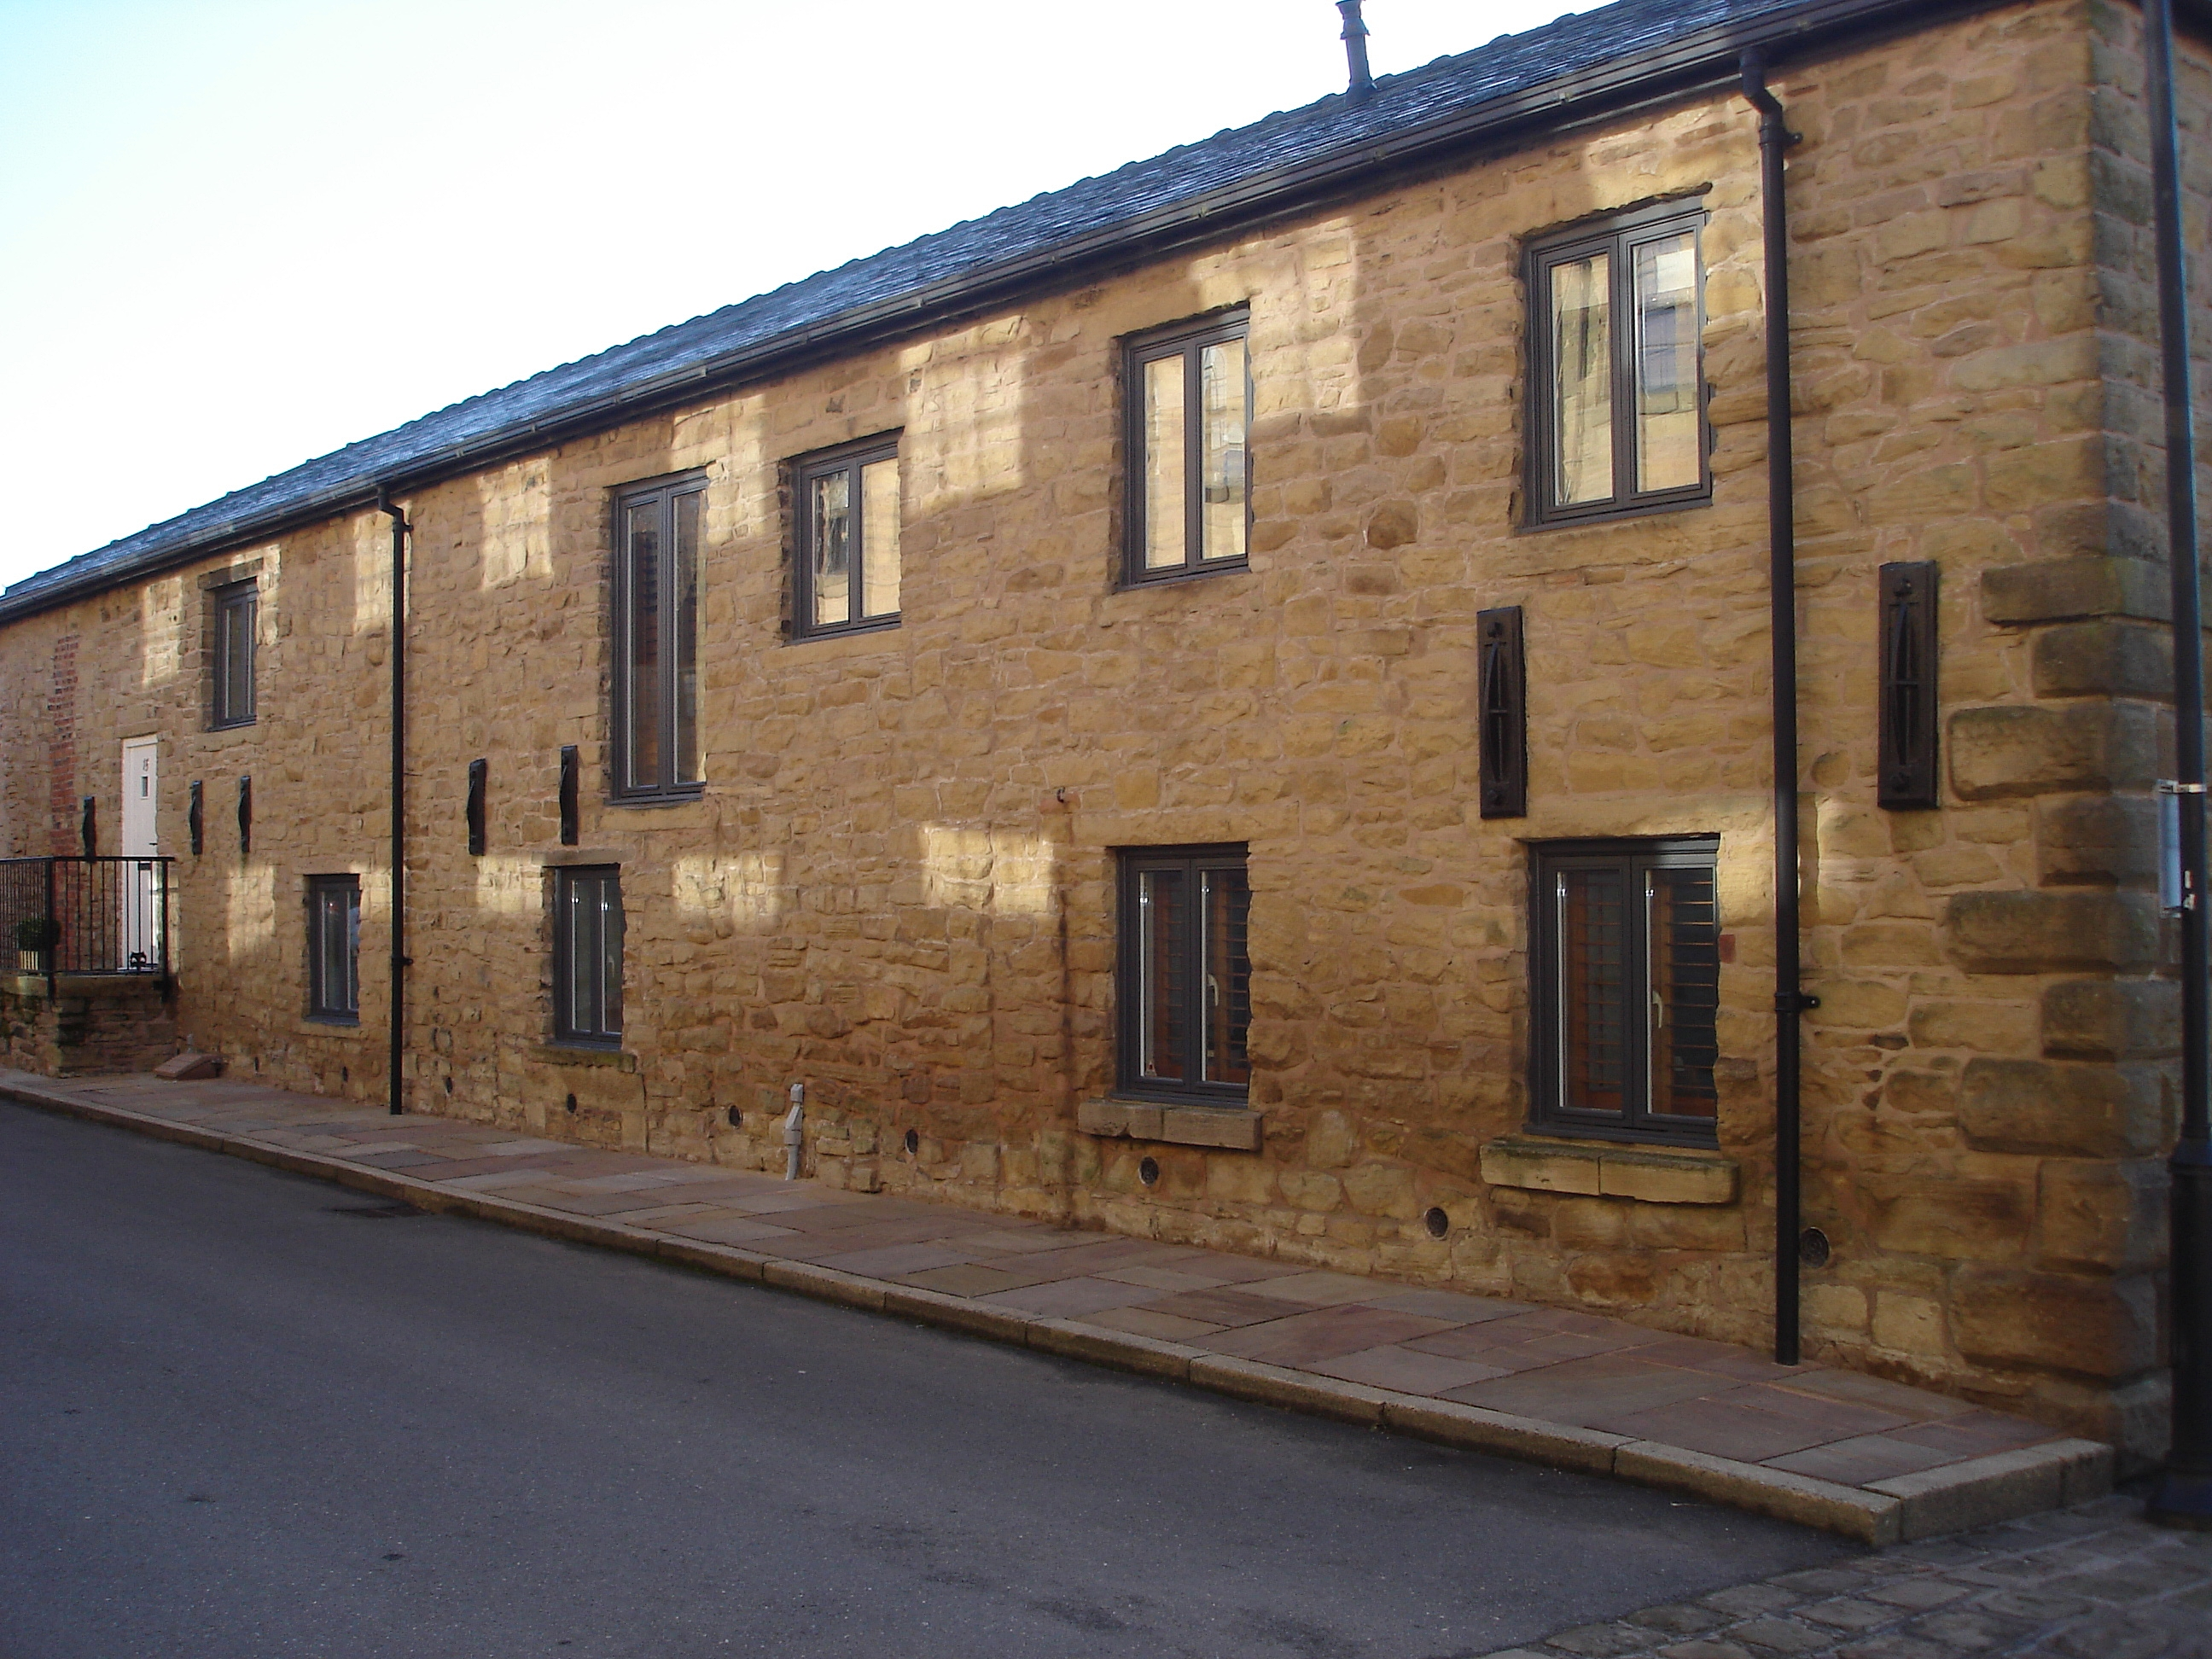 Long two-storey building